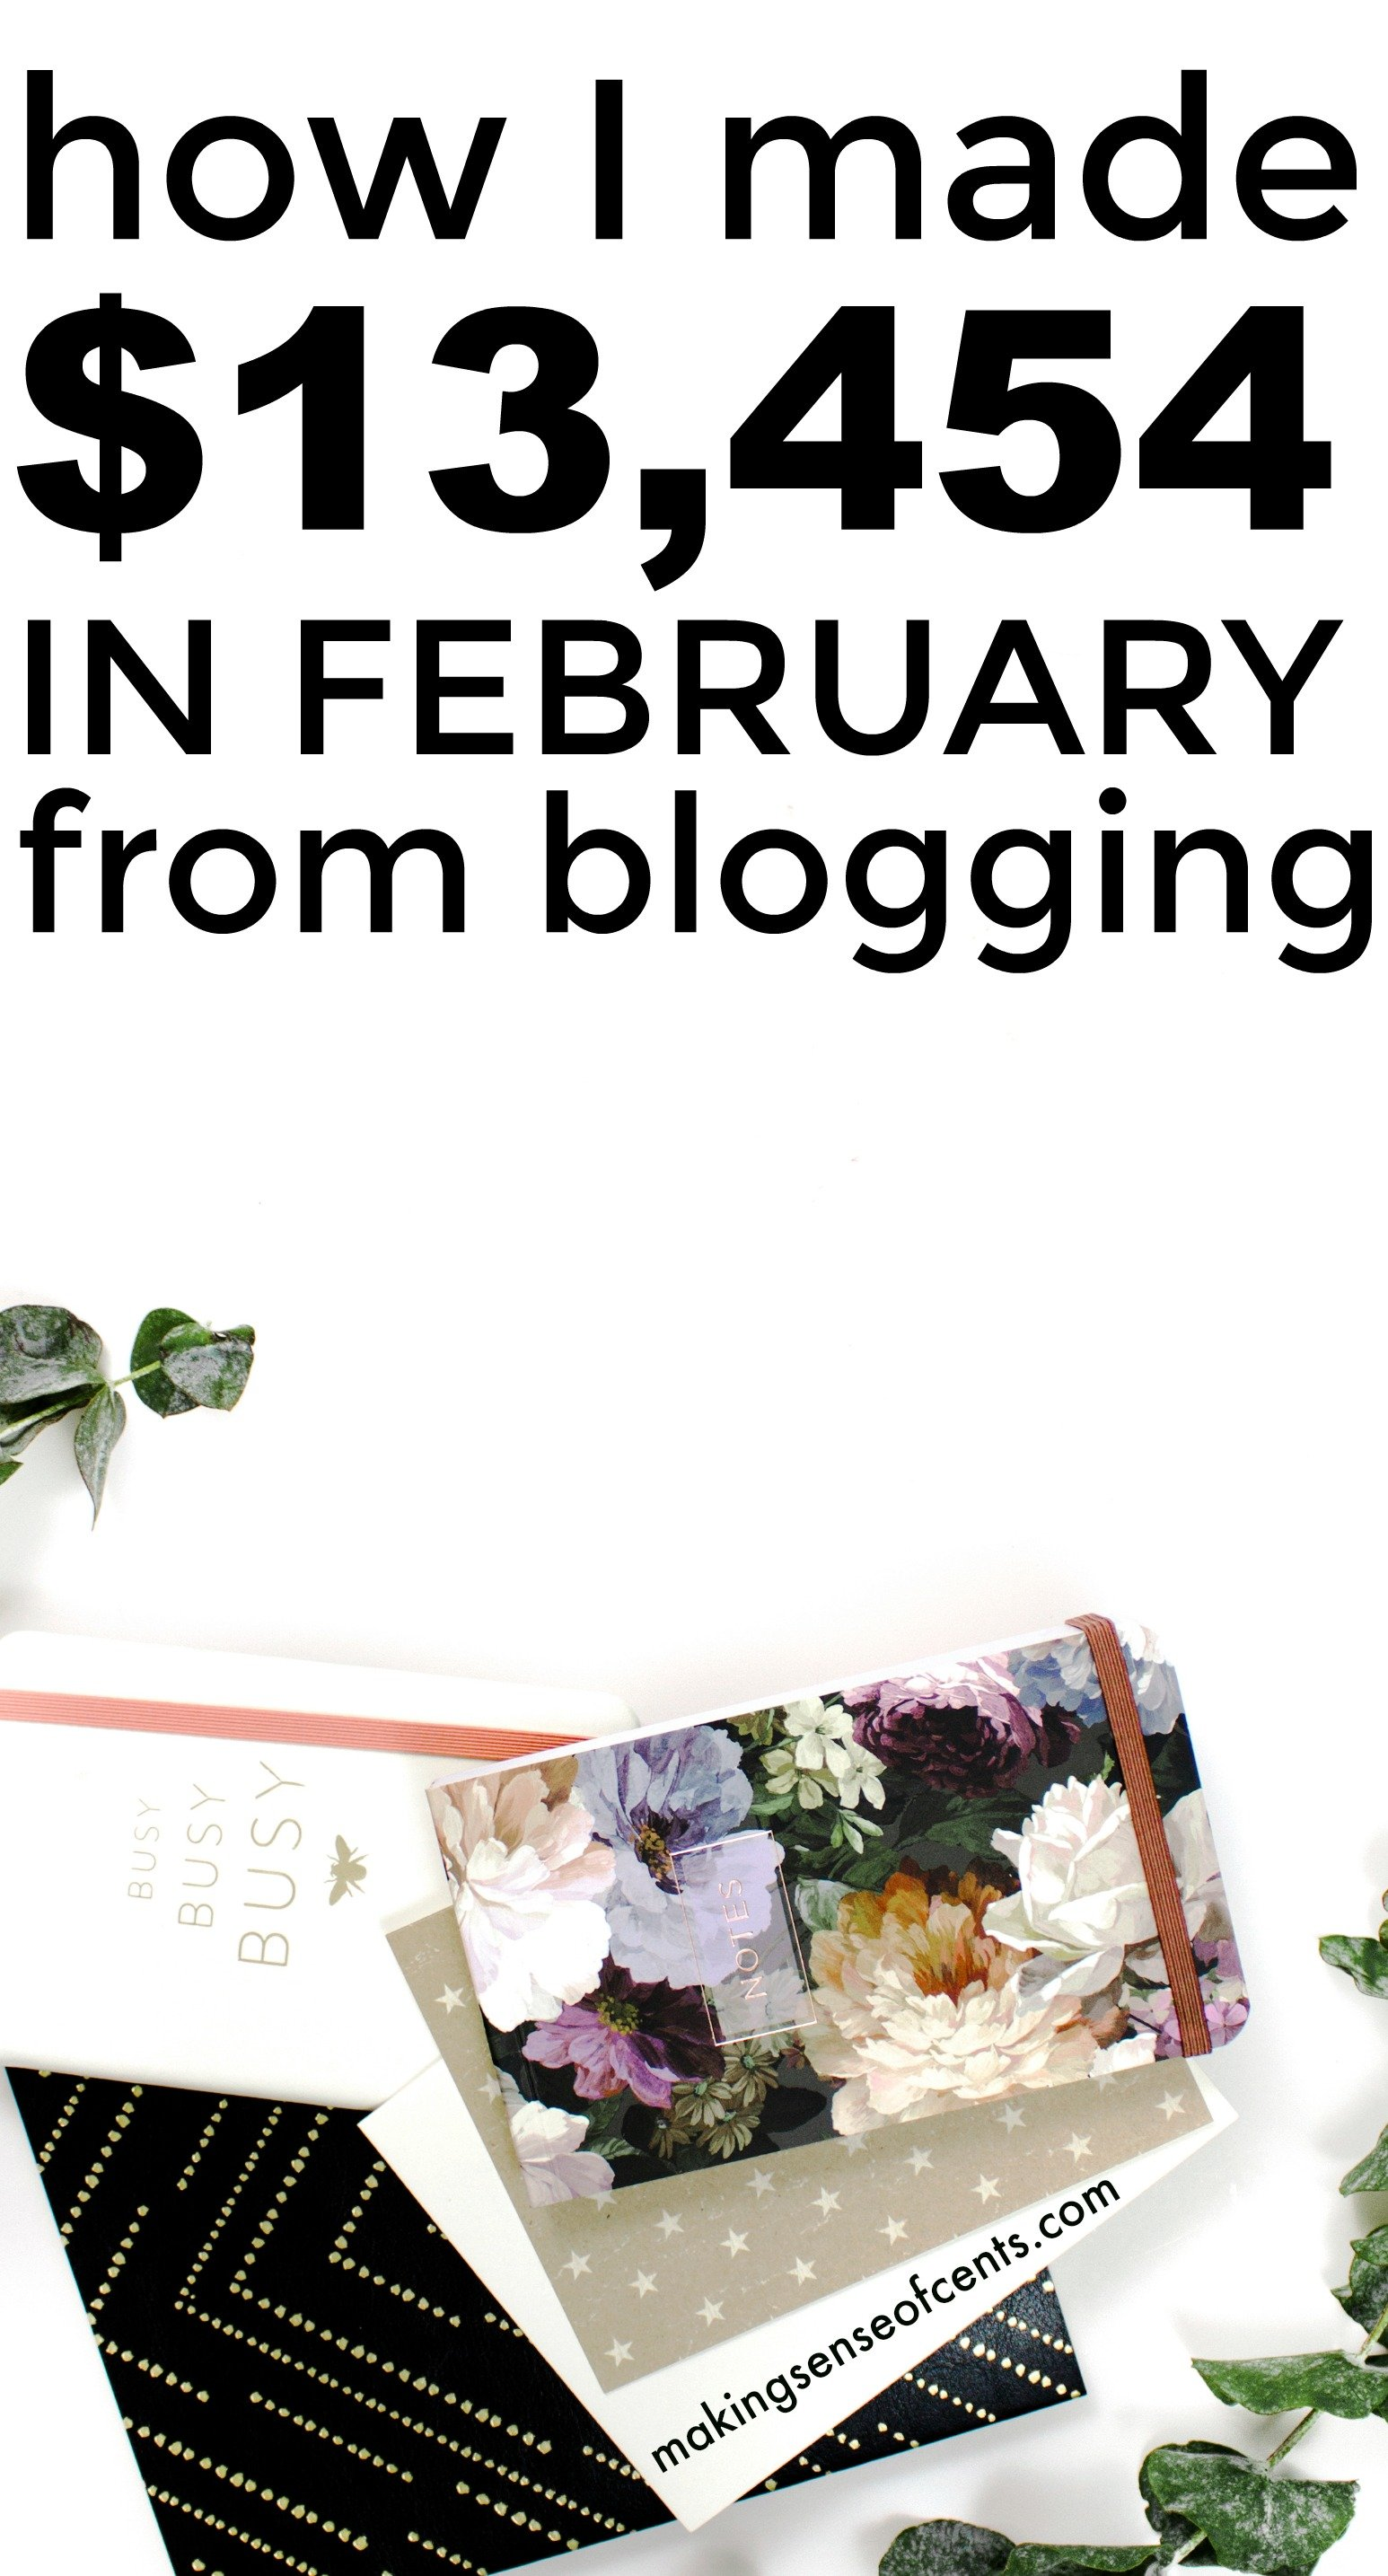 Find out how Im ade $13,454 in February from blogging.